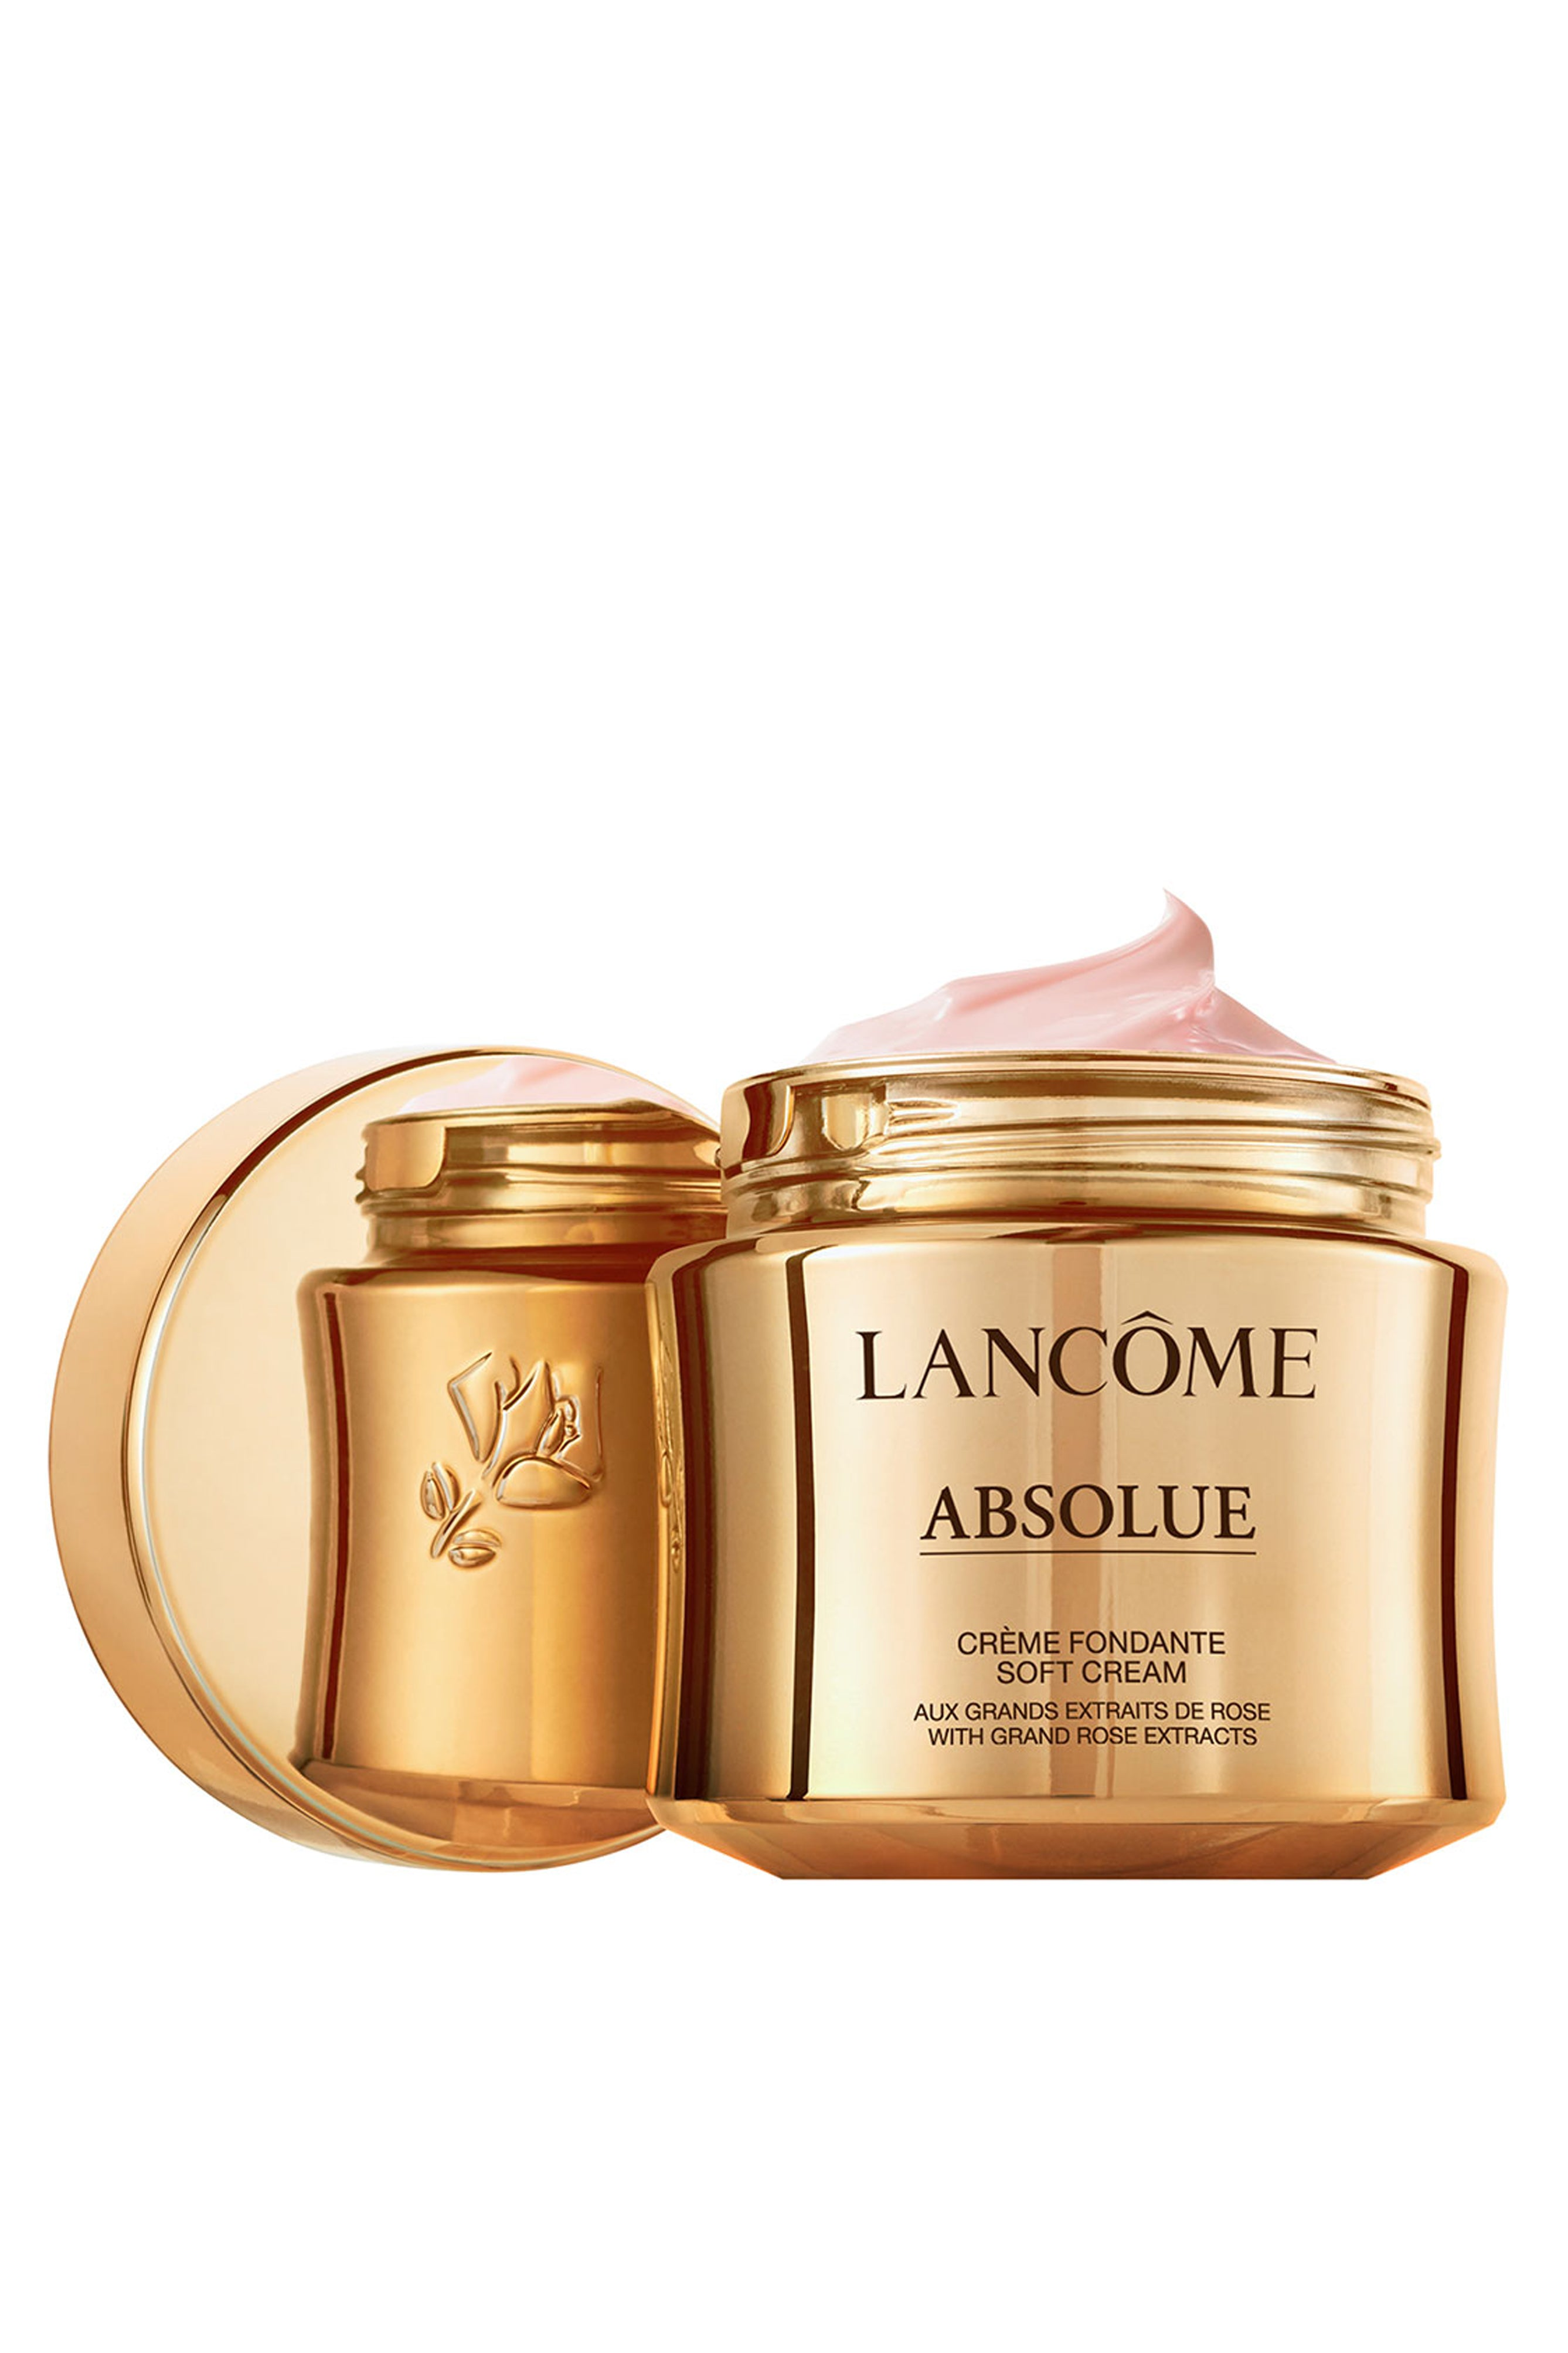 Lancôme Absolue Revitalizing & Brightening Soft Cream 60ml - Life Pharmacy St Lukes